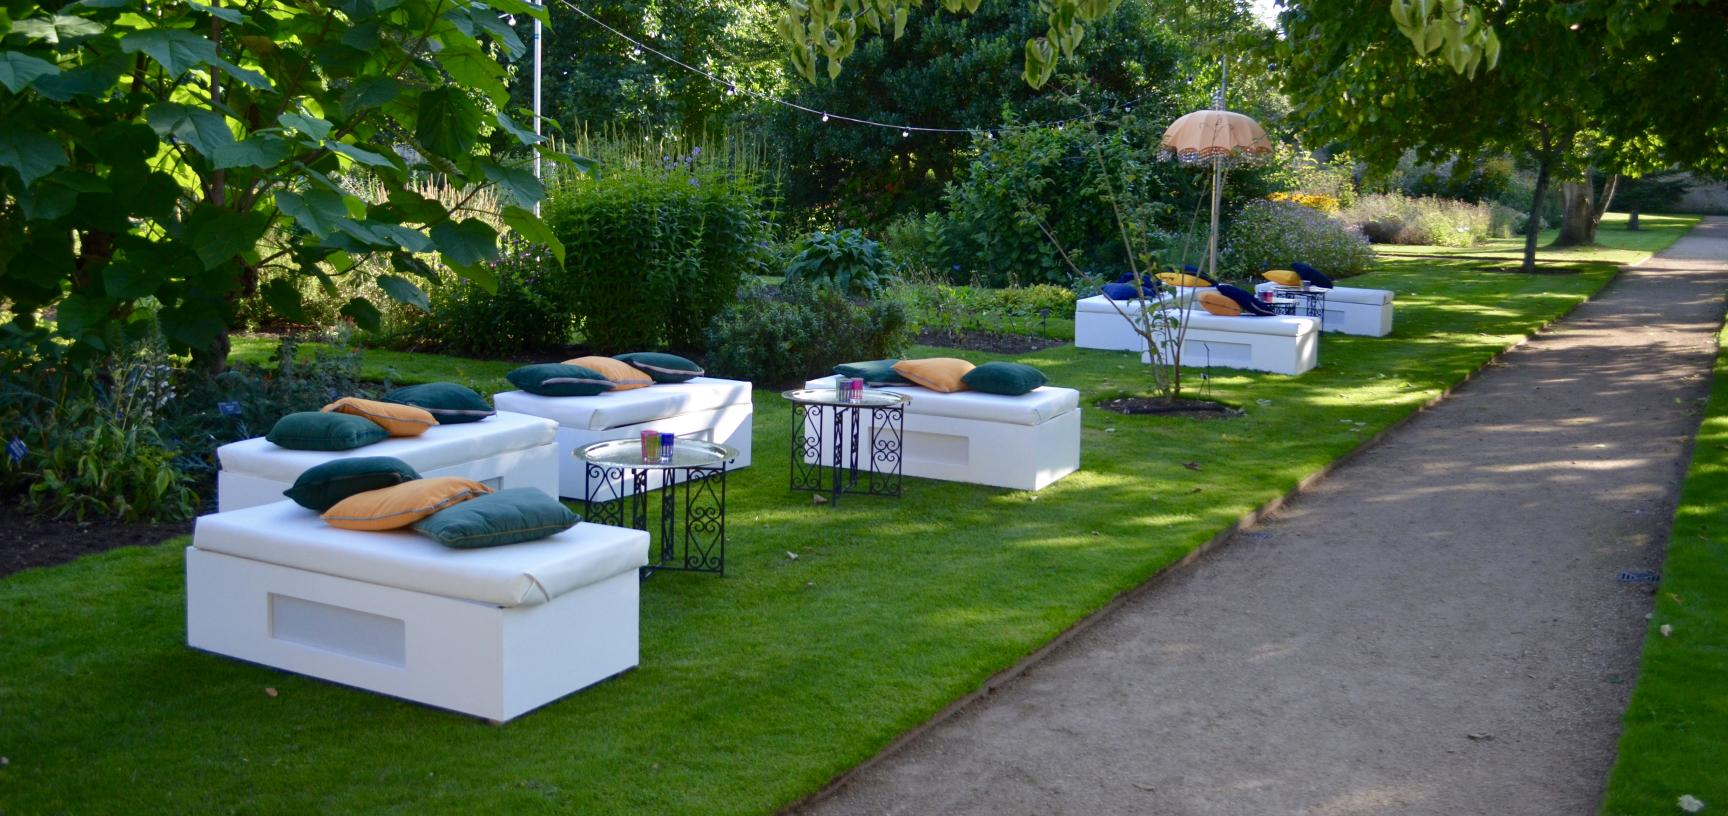 Sofa for Event in the Garden